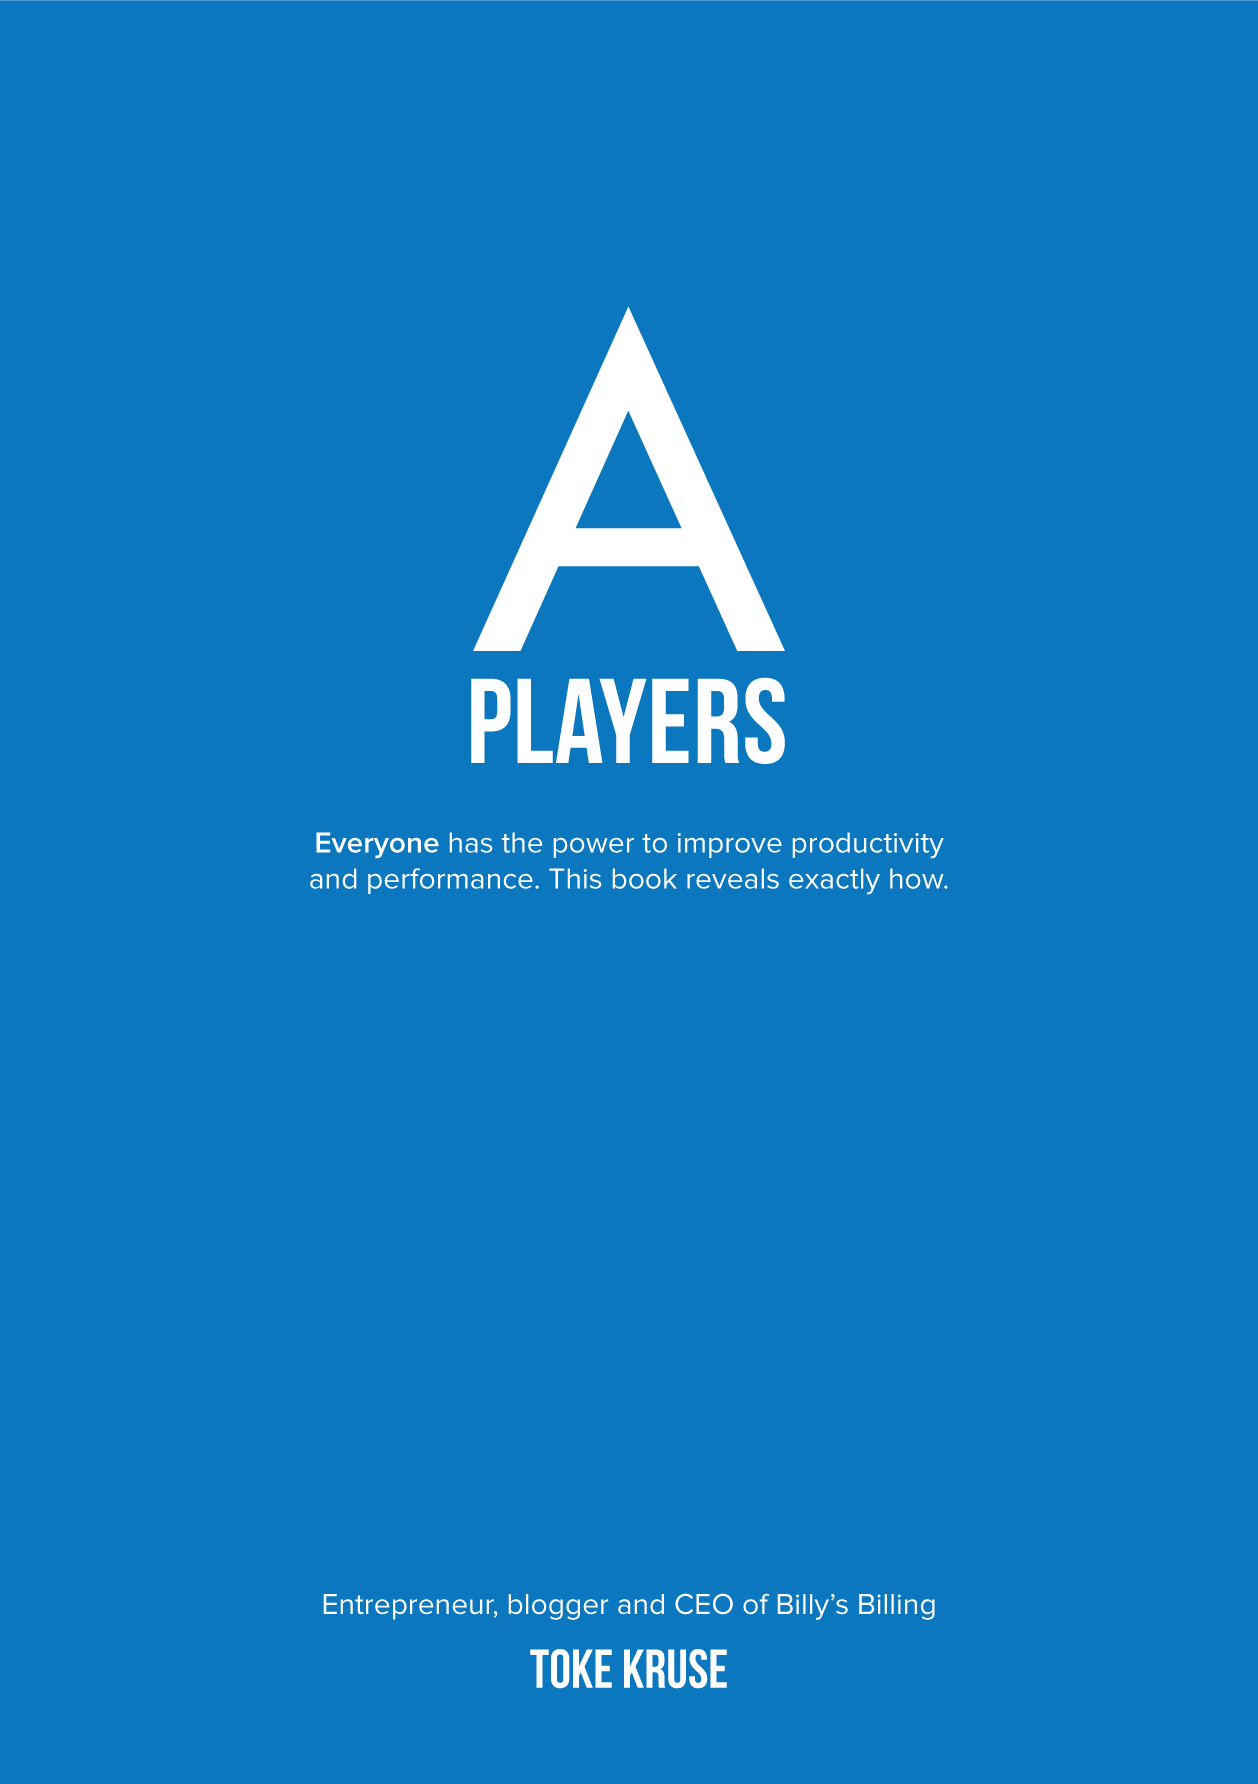 A PLAYERS - 3 Hardcopies + e-book